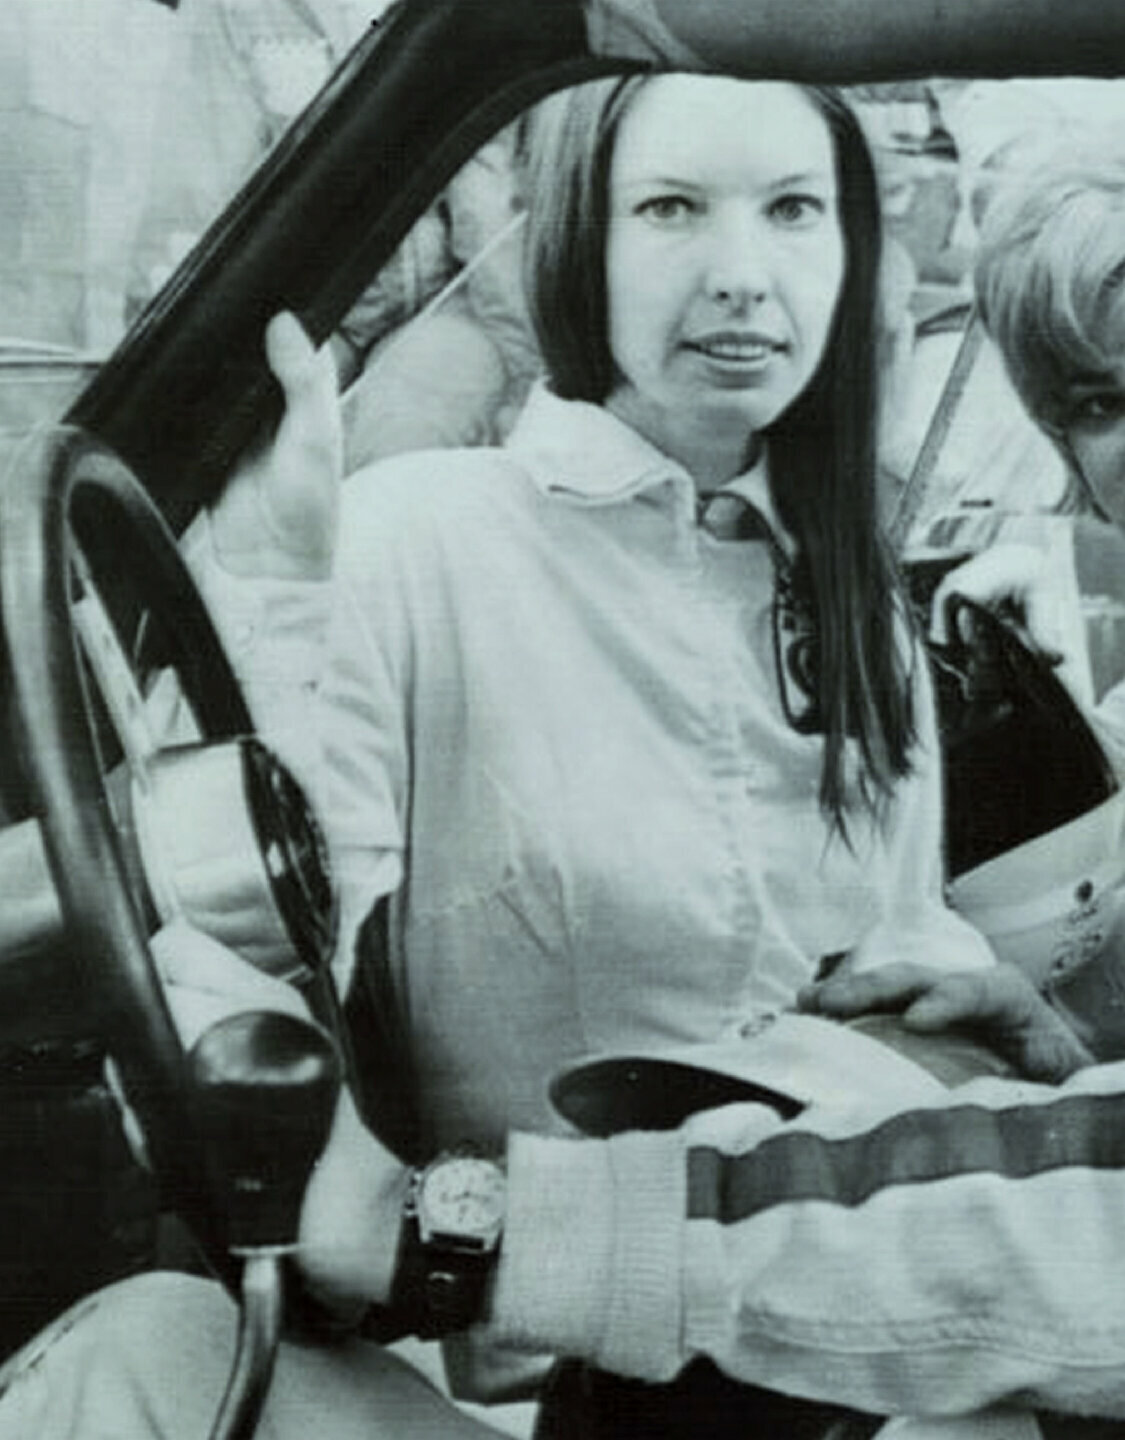 Janet Guthrie. Professional race car driver and the first woman to compete. 1972